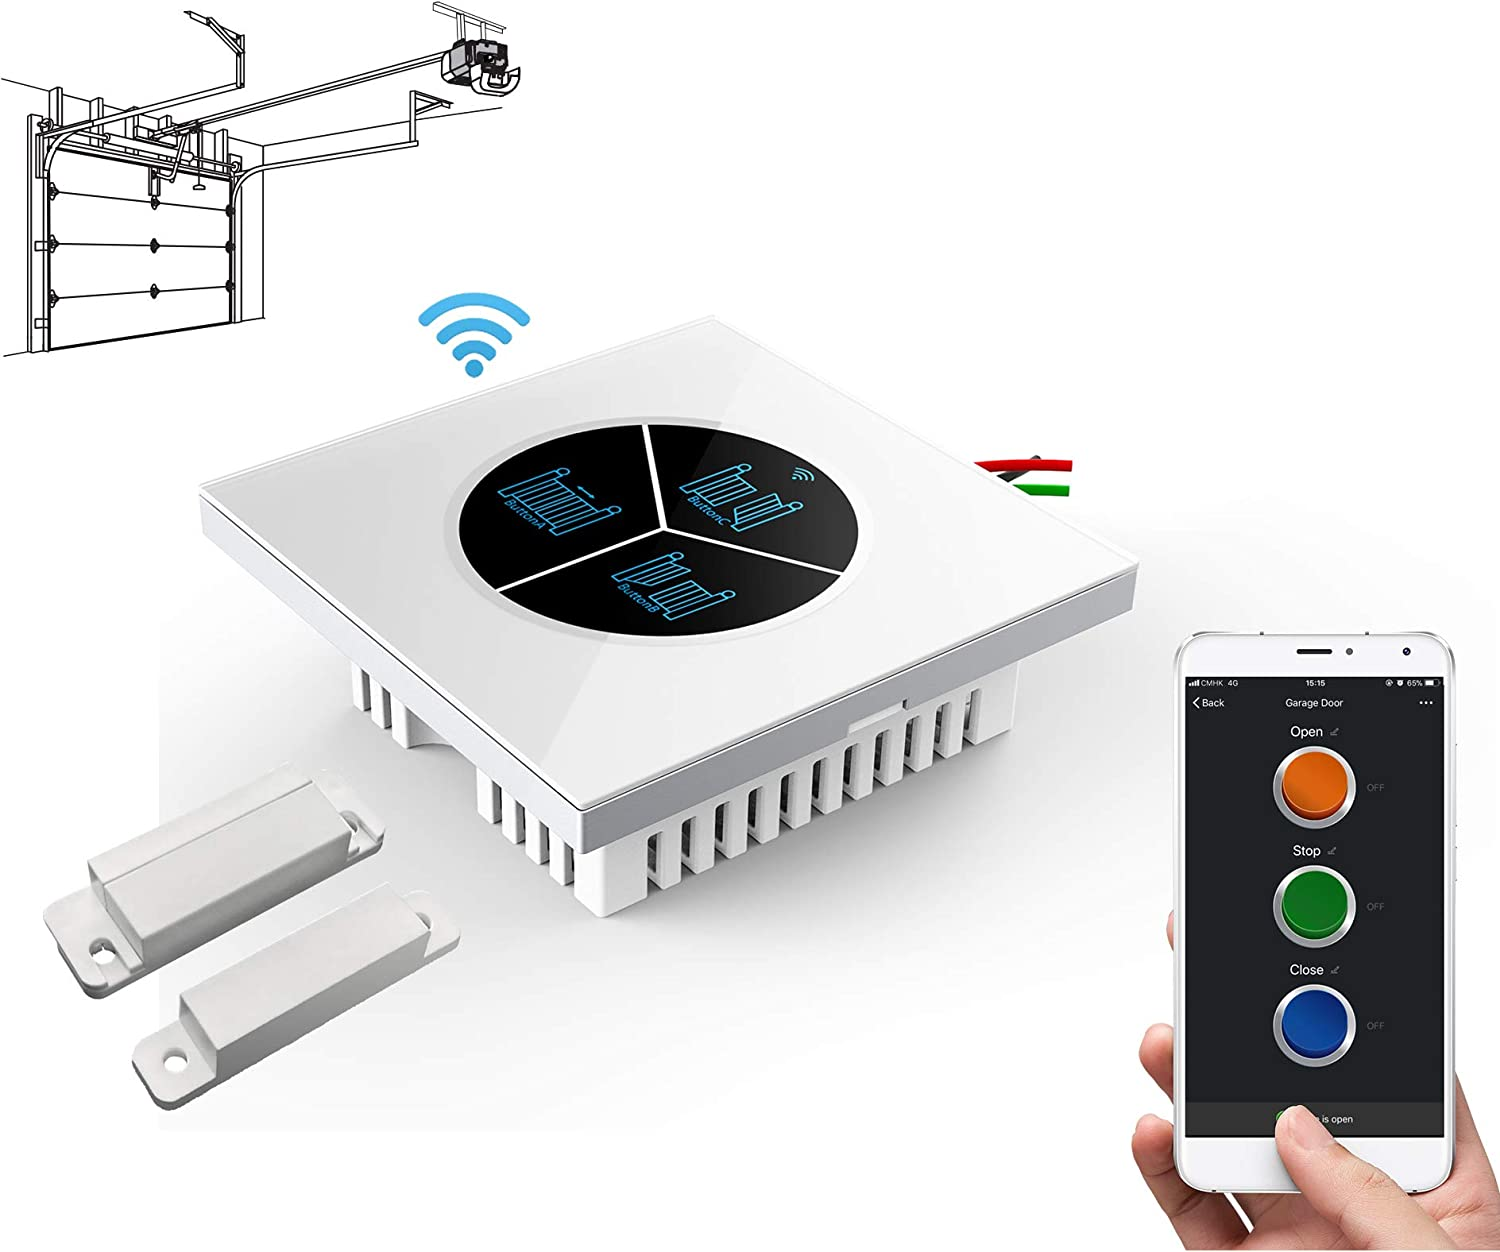 Wireless Garage Door Opener Remote WiFi Switch Universal Controlled by  Smartphone for Automatic Gate Opener System (with Door Sensor) - -  Amazon.com